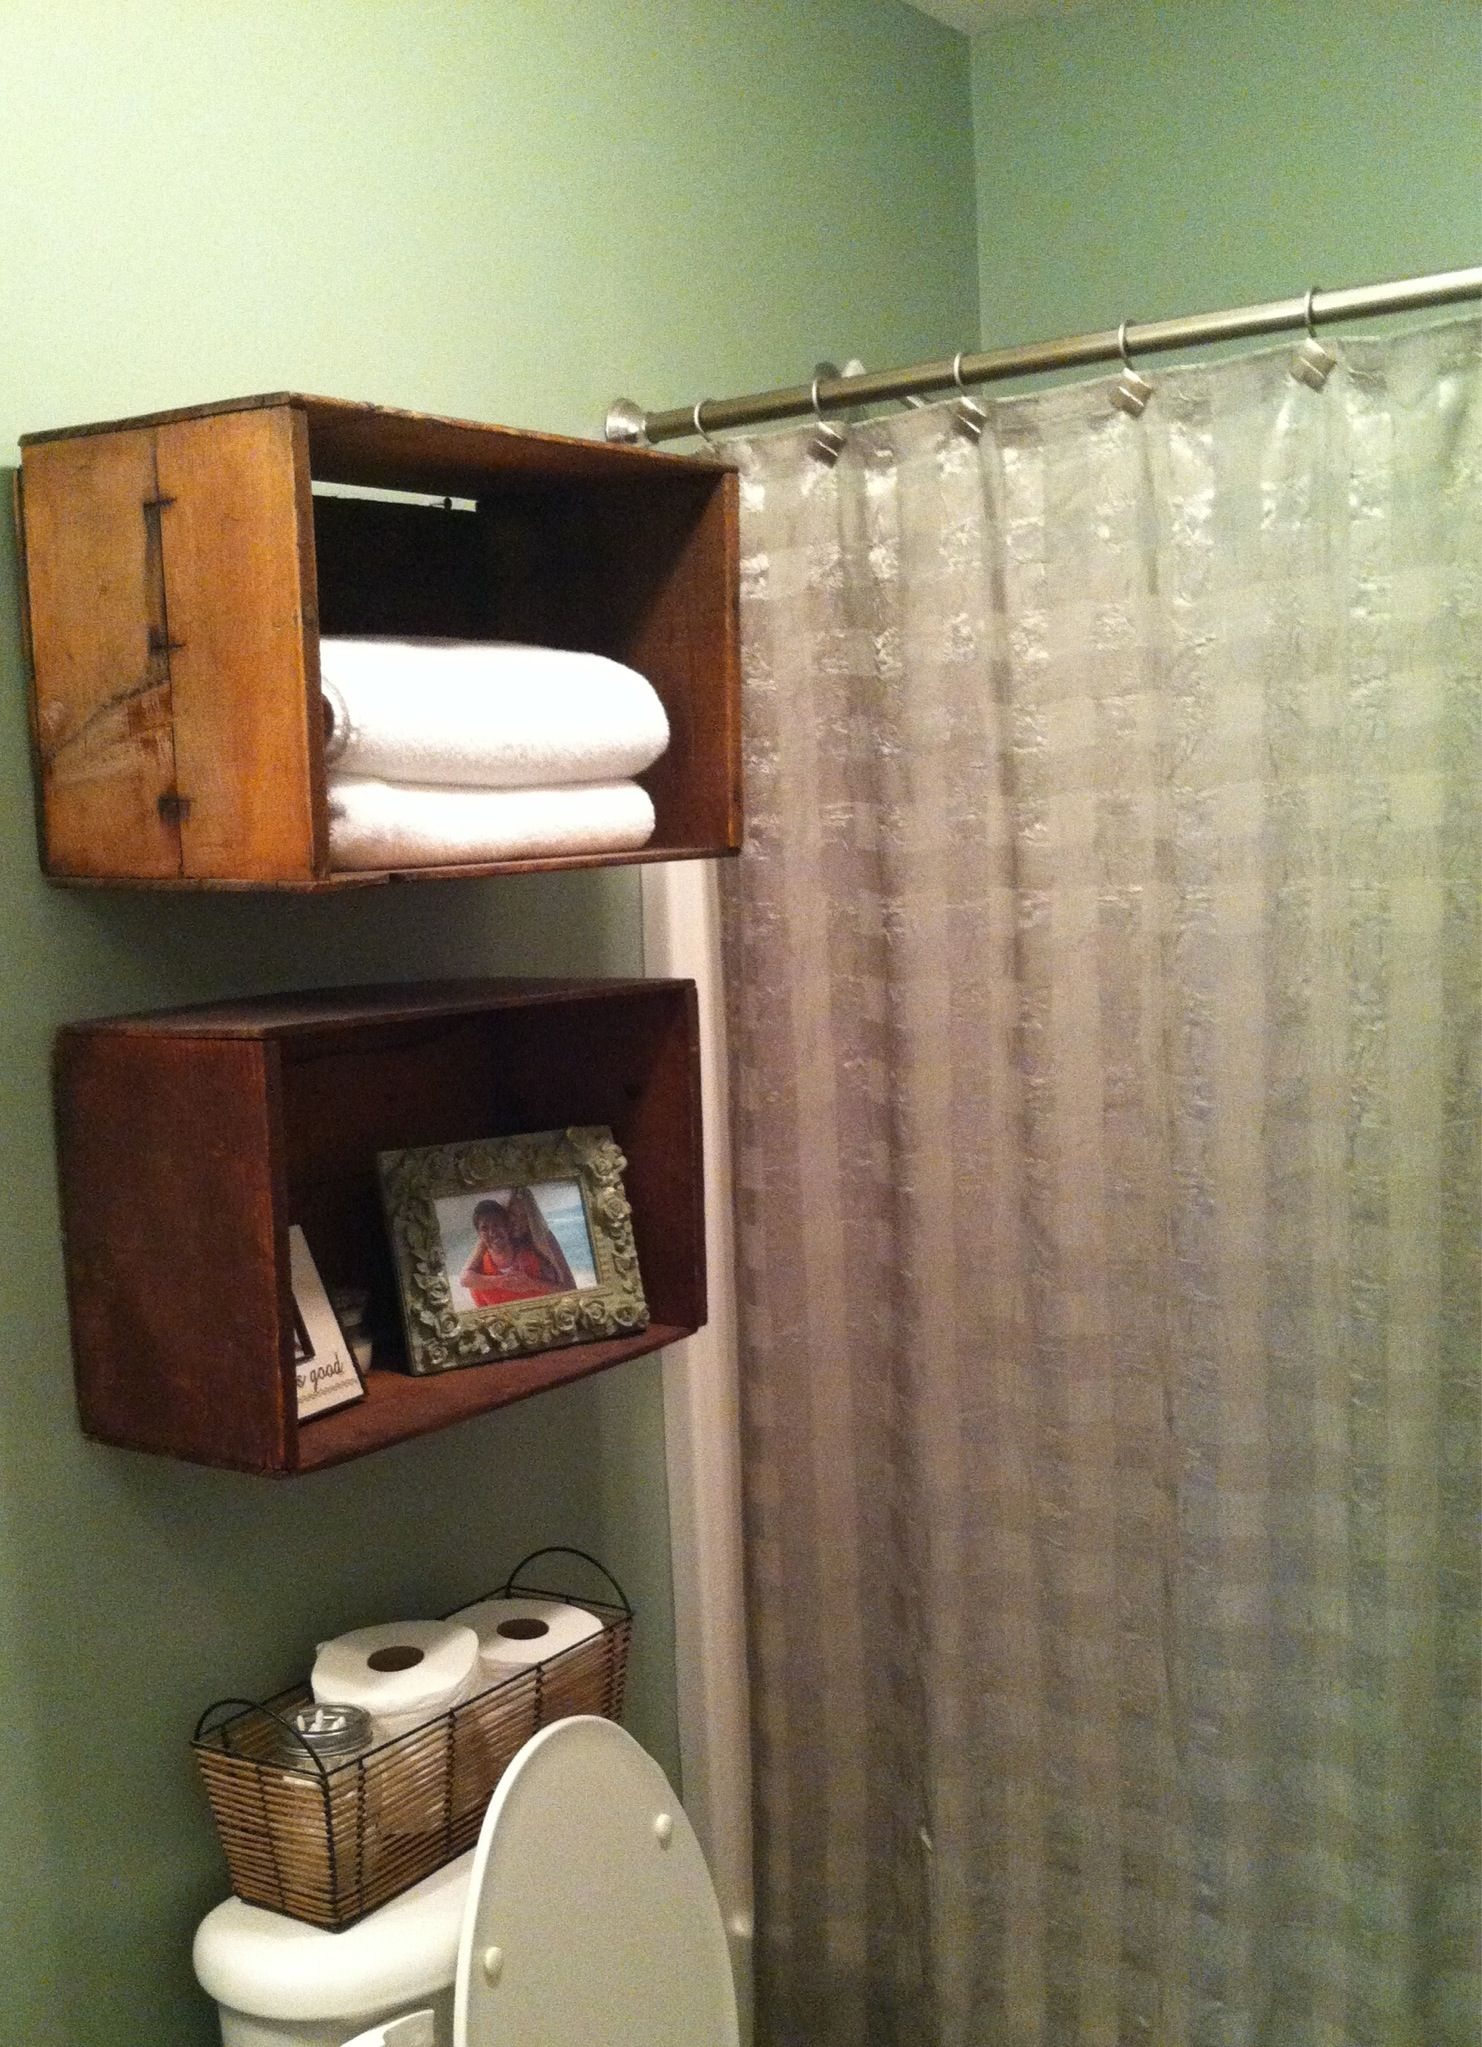 Wooden Crates As Bathroom Shelves Diy Wall Shelves